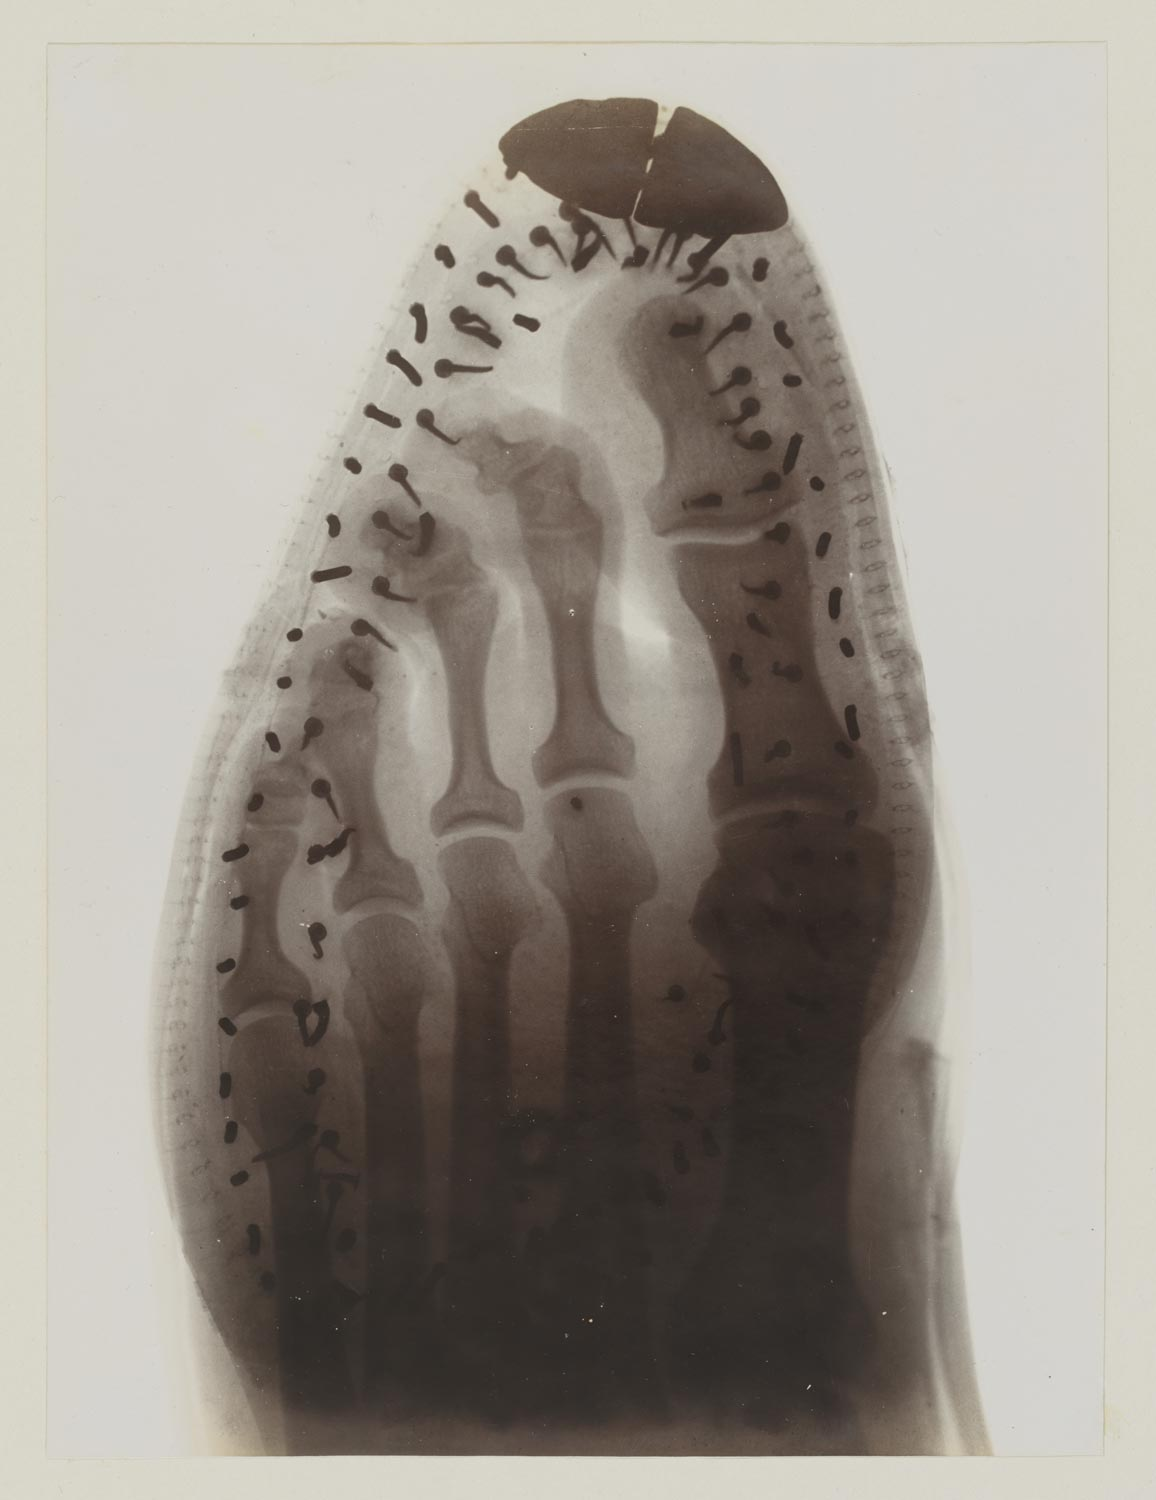 x-ray image of a foot in a shoe, the toe cap and nails holding the shoe together are visible